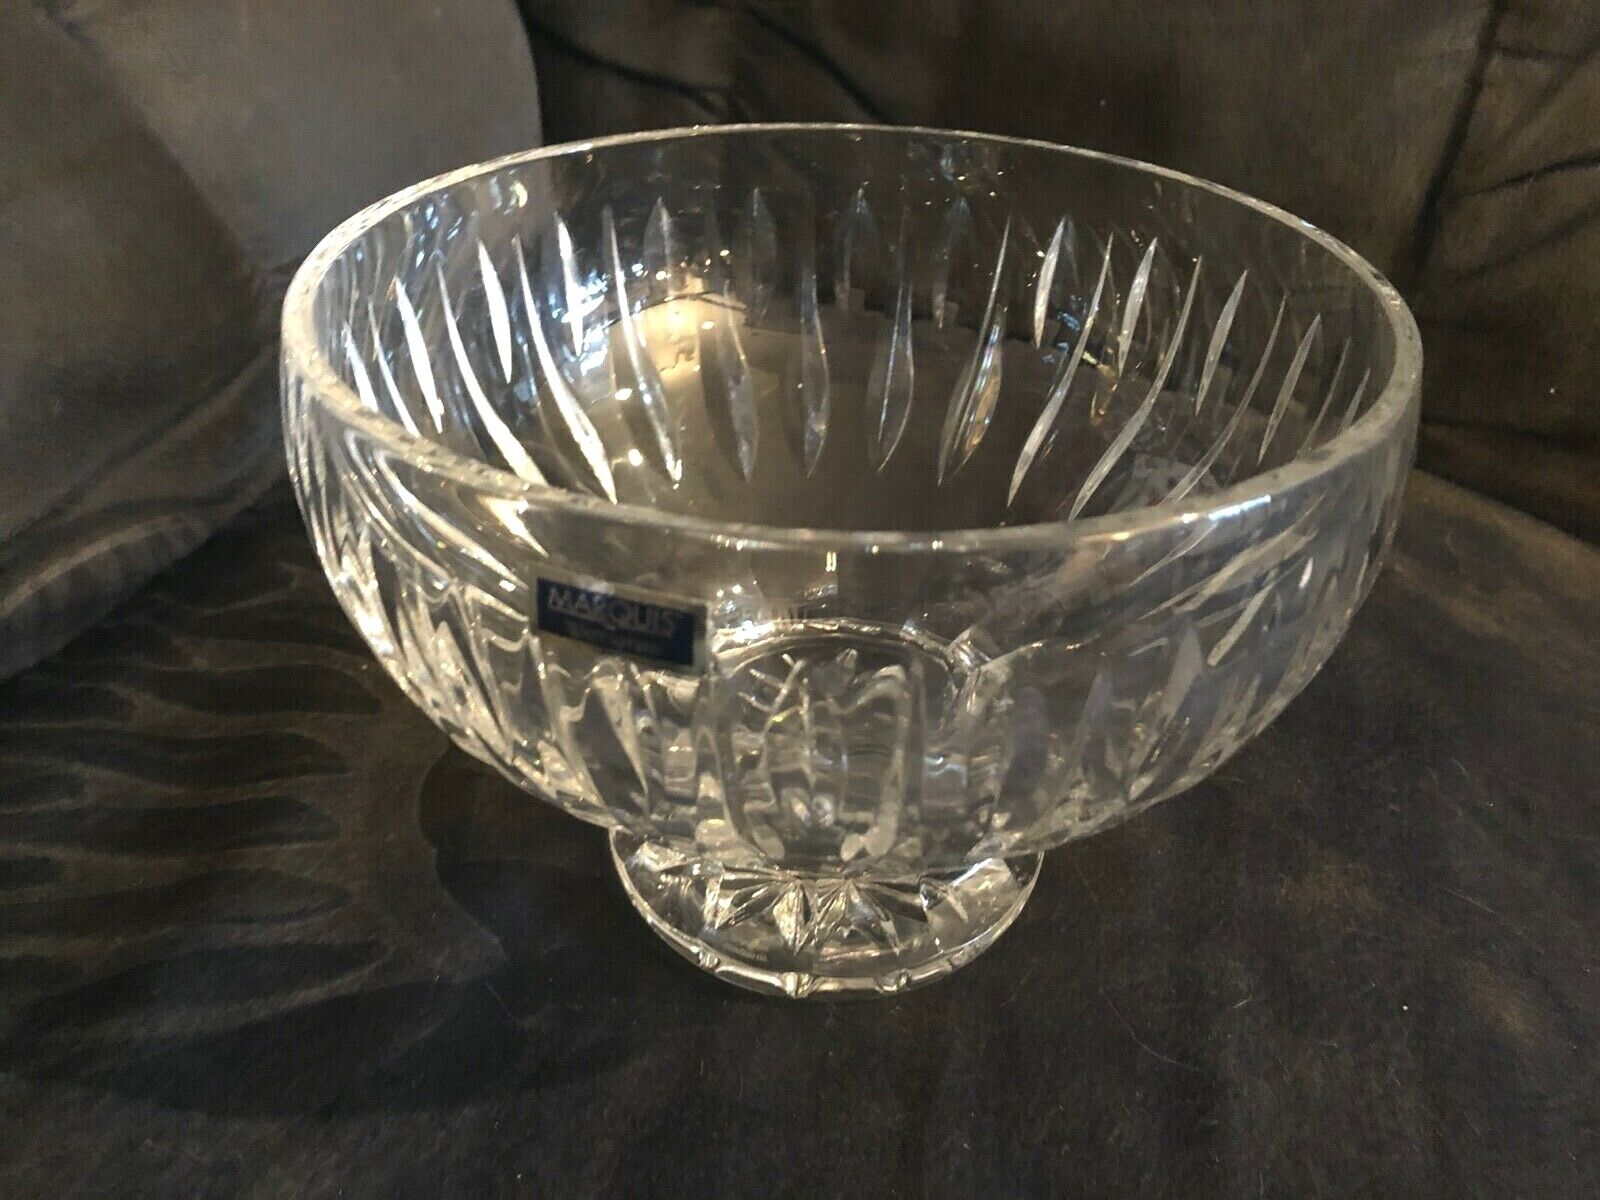 STUNNING VINTAGE 7 1/2 INCH MARQUIS BY WATERFORD SHERIDAN CUT CRYSTAL FTD. BOWL - $18.95